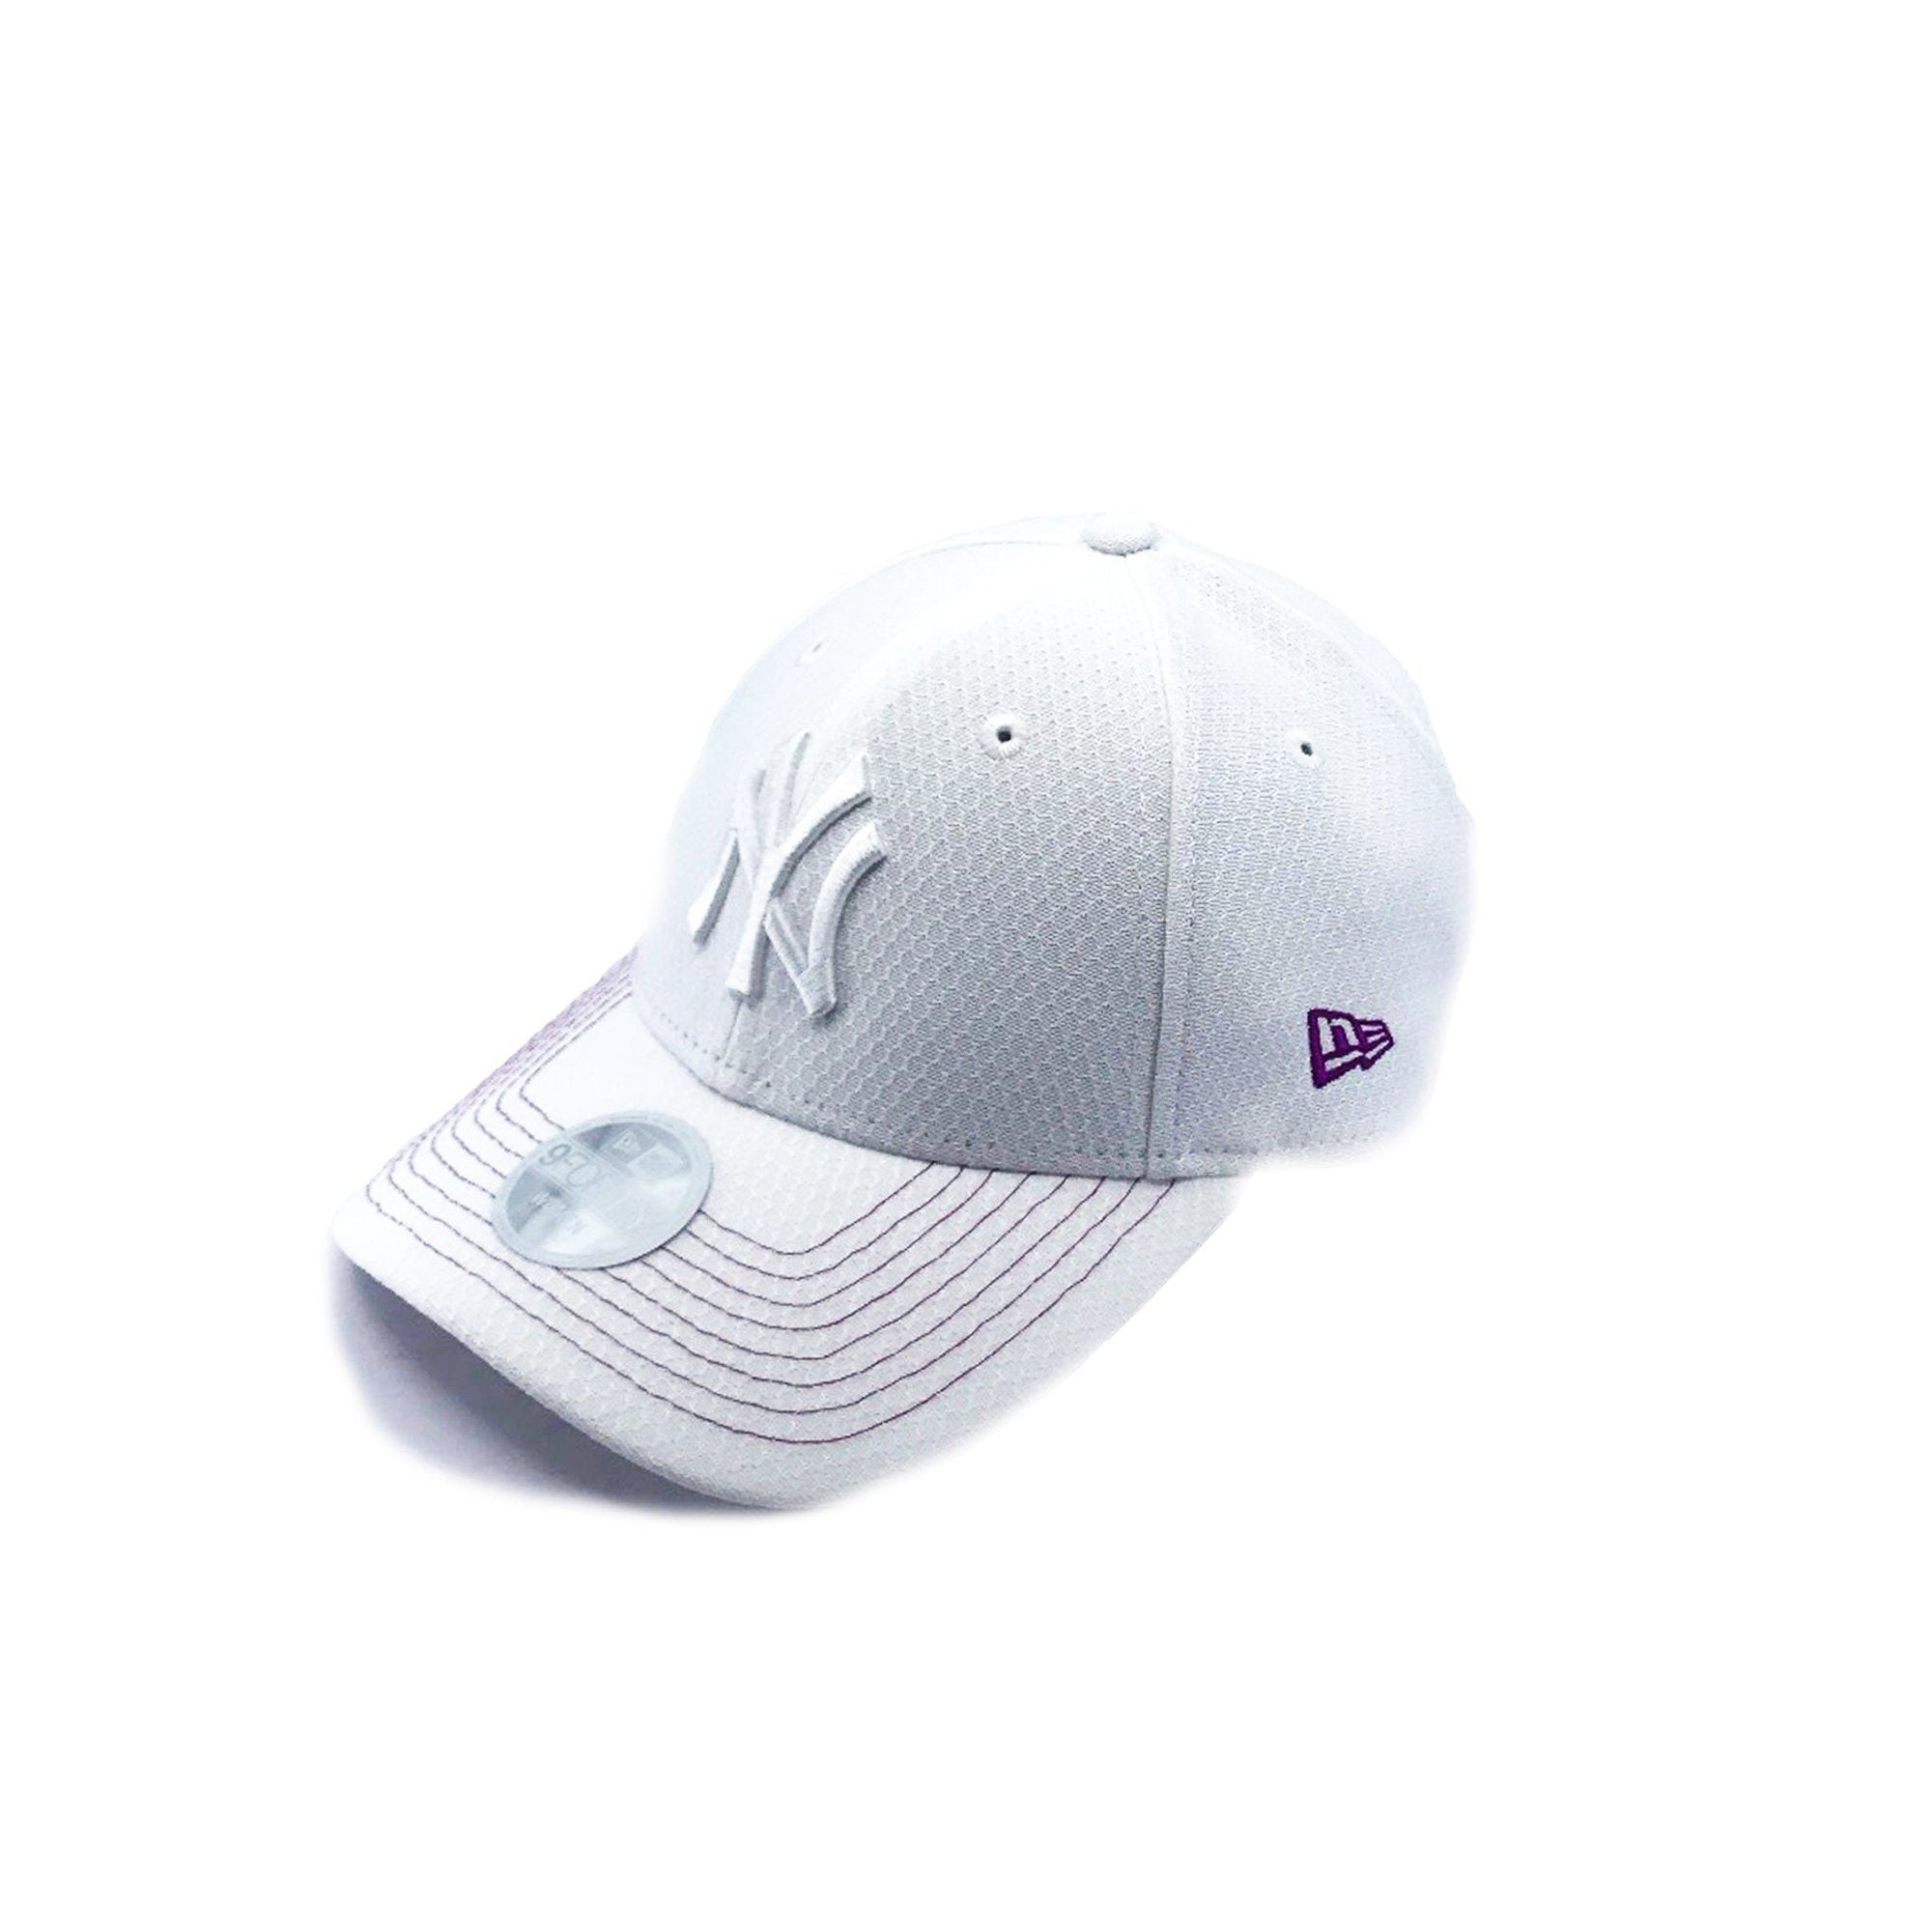 New Era Women's 9FORTY - New York Yankees- Purple Pop SP-Headwear-Caps New Era